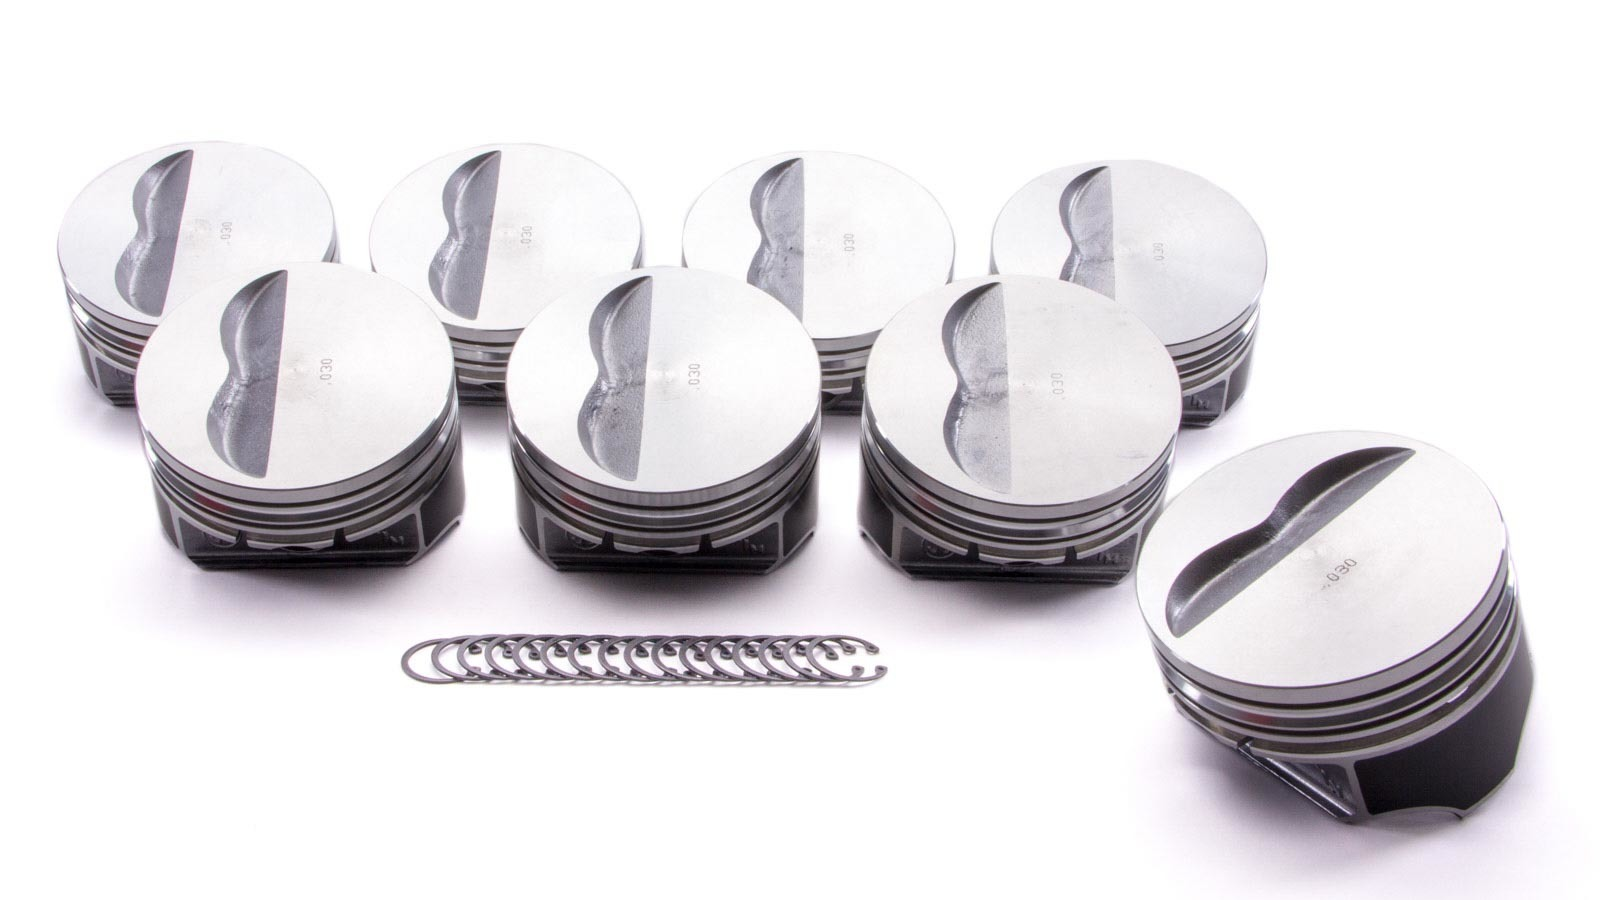 KB Performance Pistons 9907HC.030 Piston, Claimer Series, Hypereutectic, 4.155 in Bore, 5/64 x 5/64 x 3/16 in Ring Grooves, Minus 5.0 cc, Small Block Chevy, Set of 8